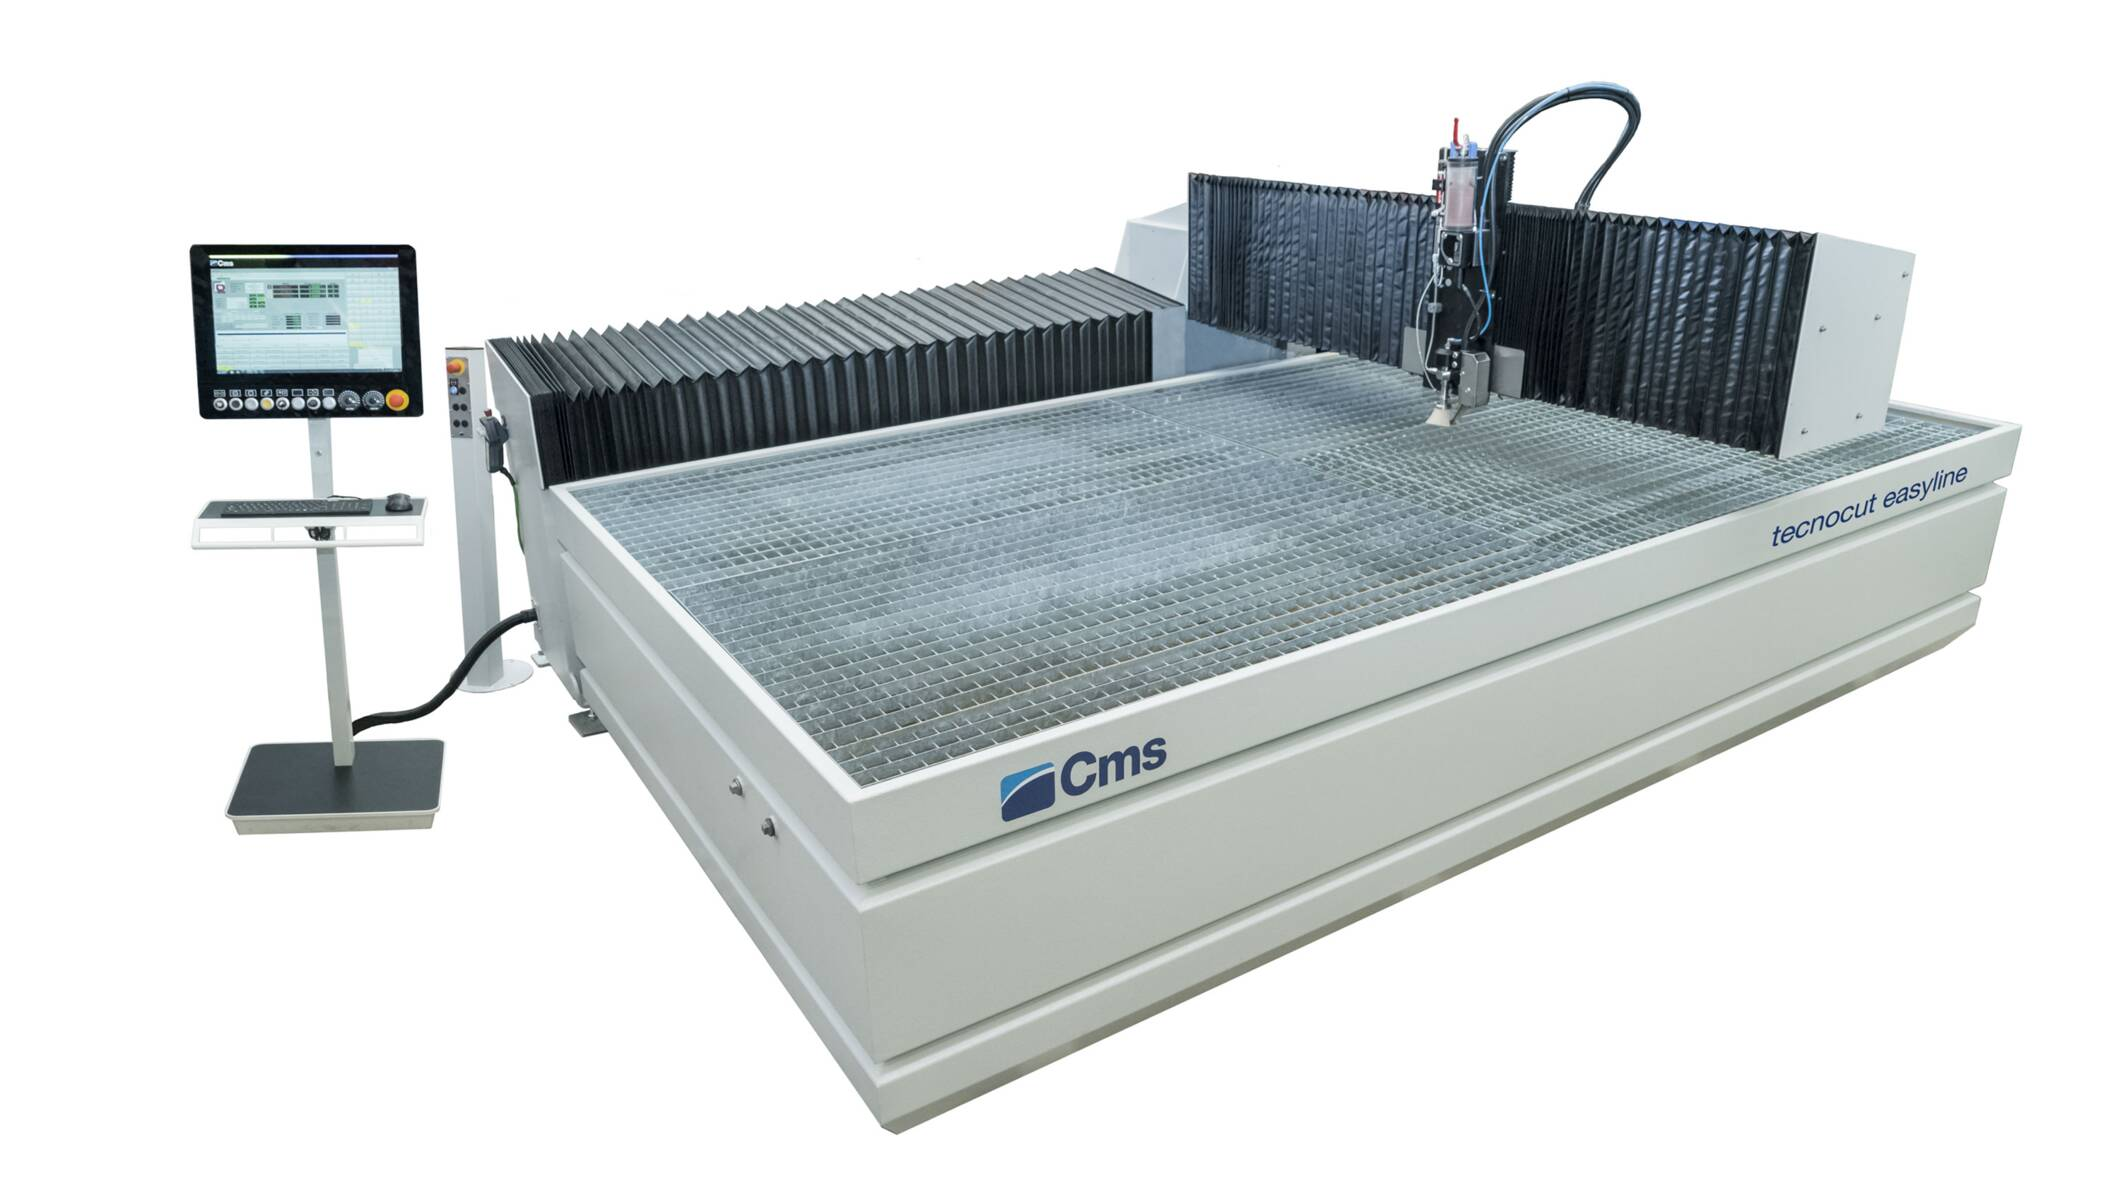 Metal processing - Complete waterjet cutting systems - tecnocut easyline